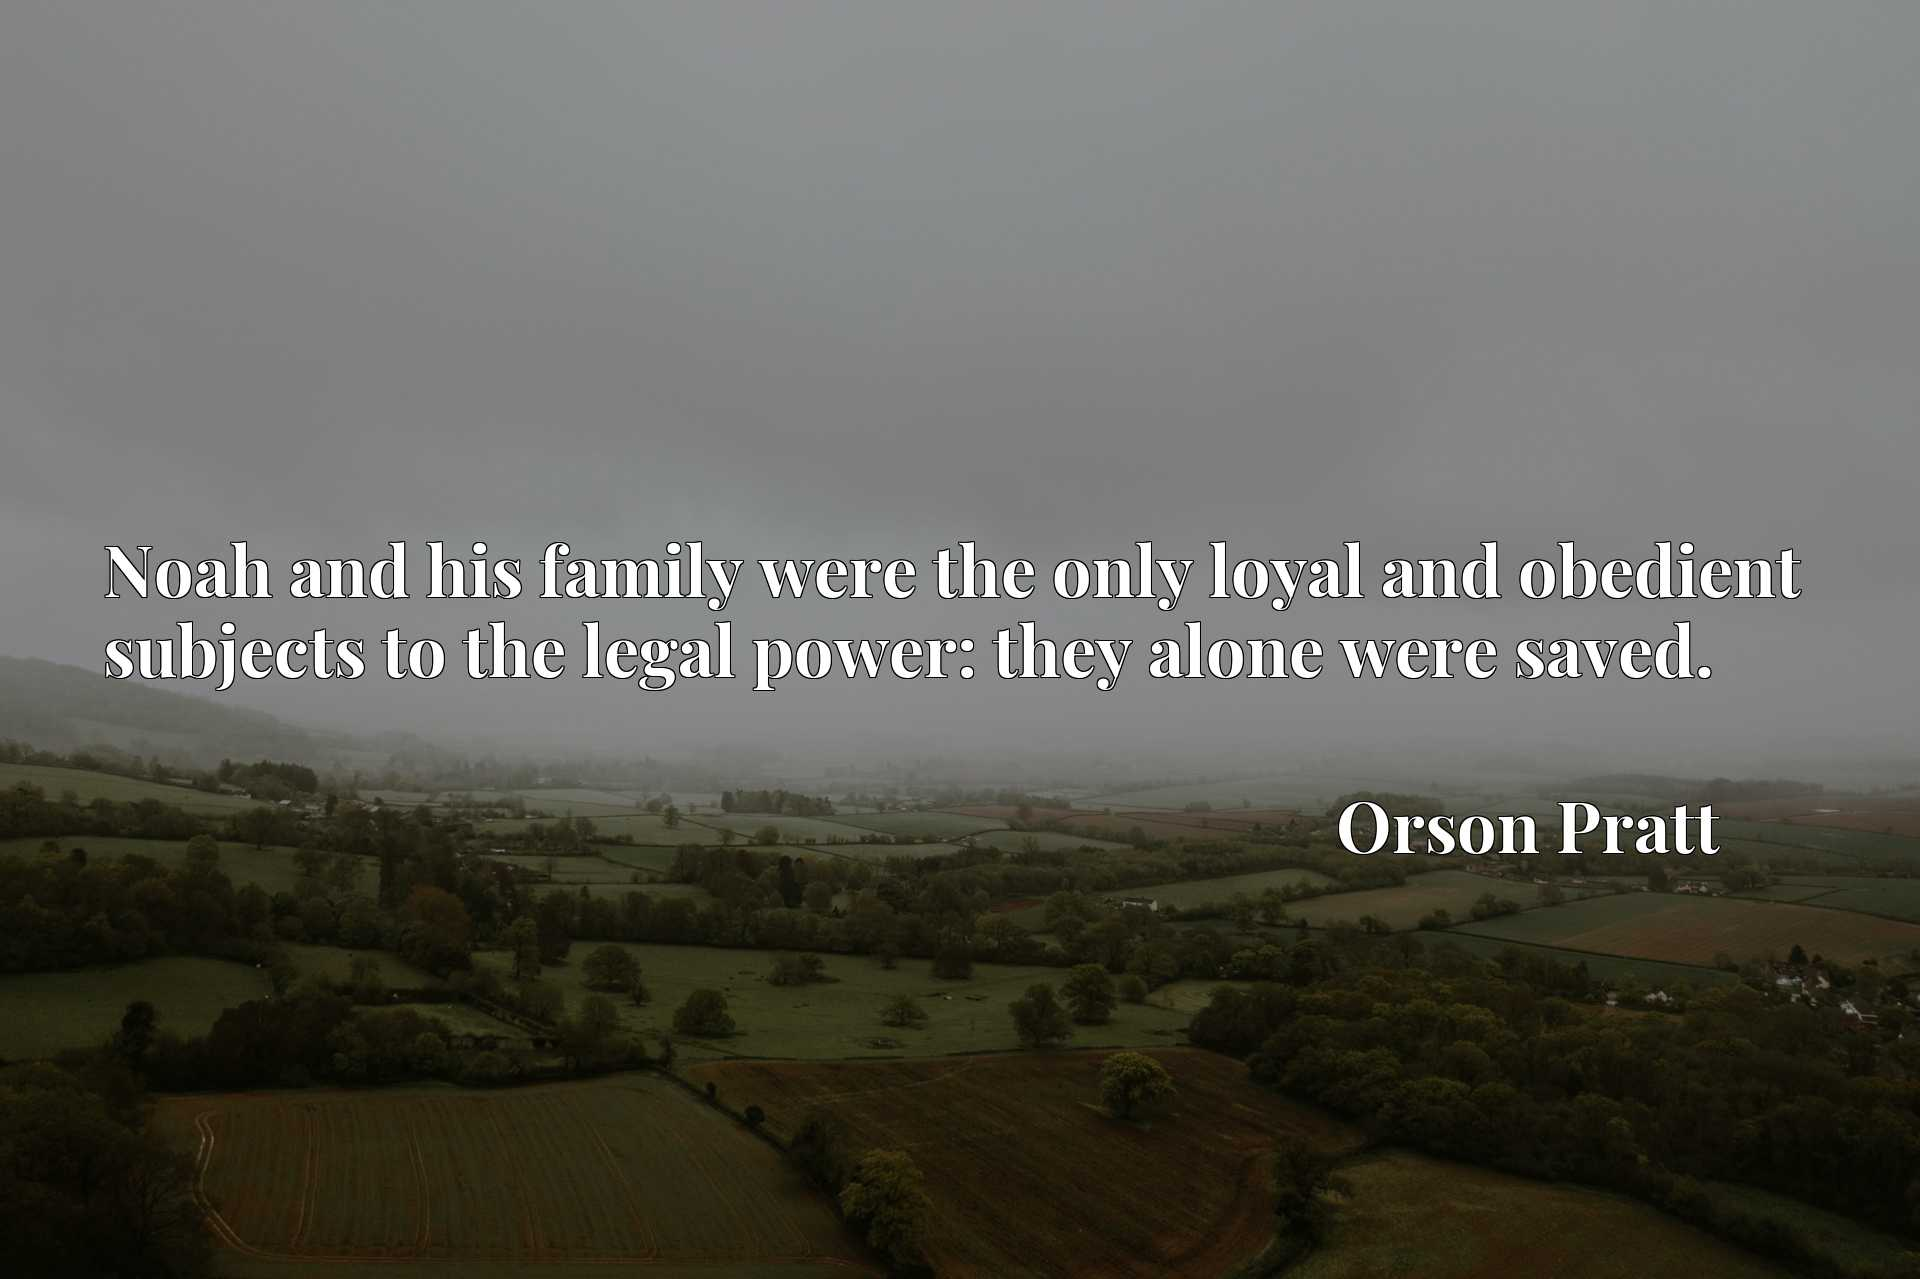 Quote Picture :Noah and his family were the only loyal and obedient subjects to the legal power: they alone were saved.